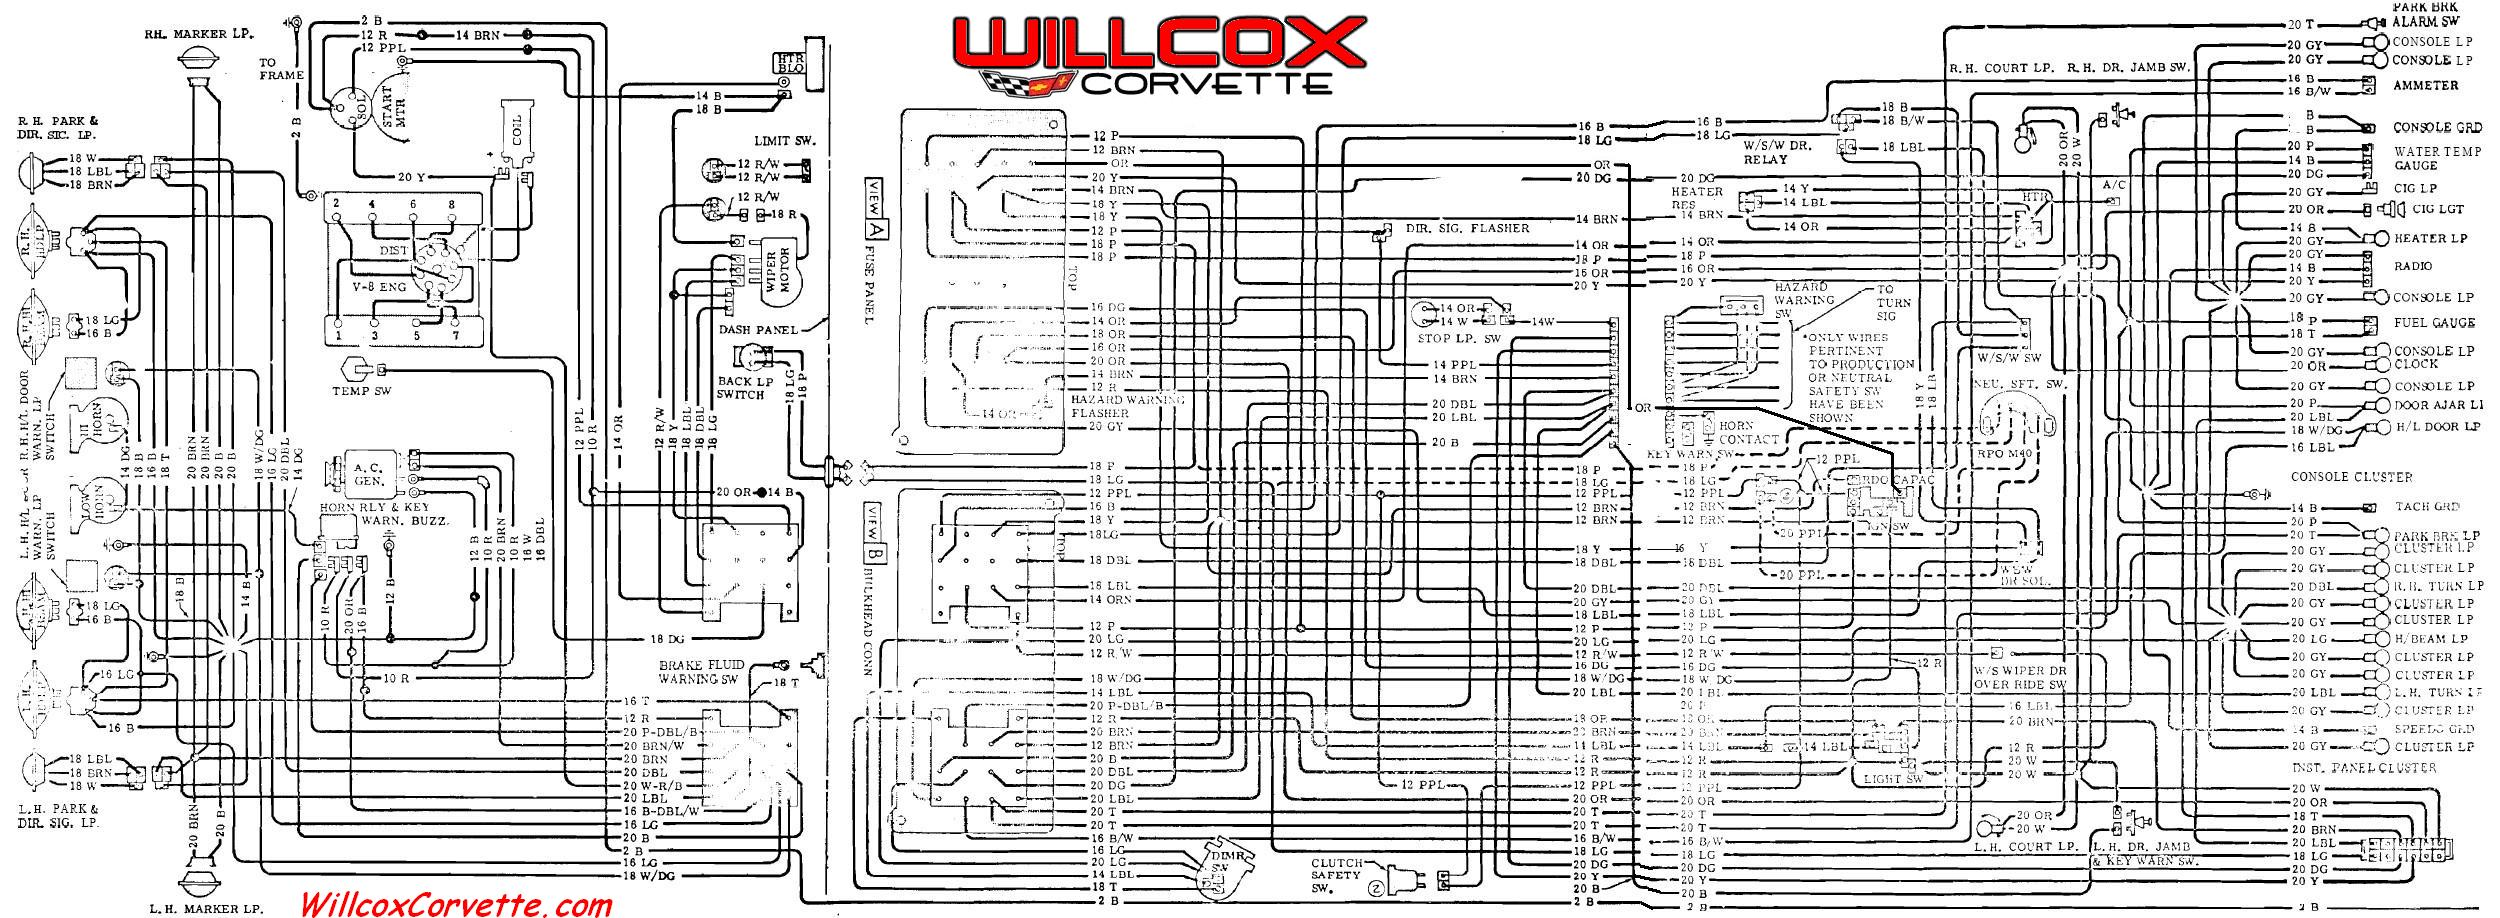 1990 Corvette Fuse Panel Diagram Wiring Detailed 1981 Gmc Box 69